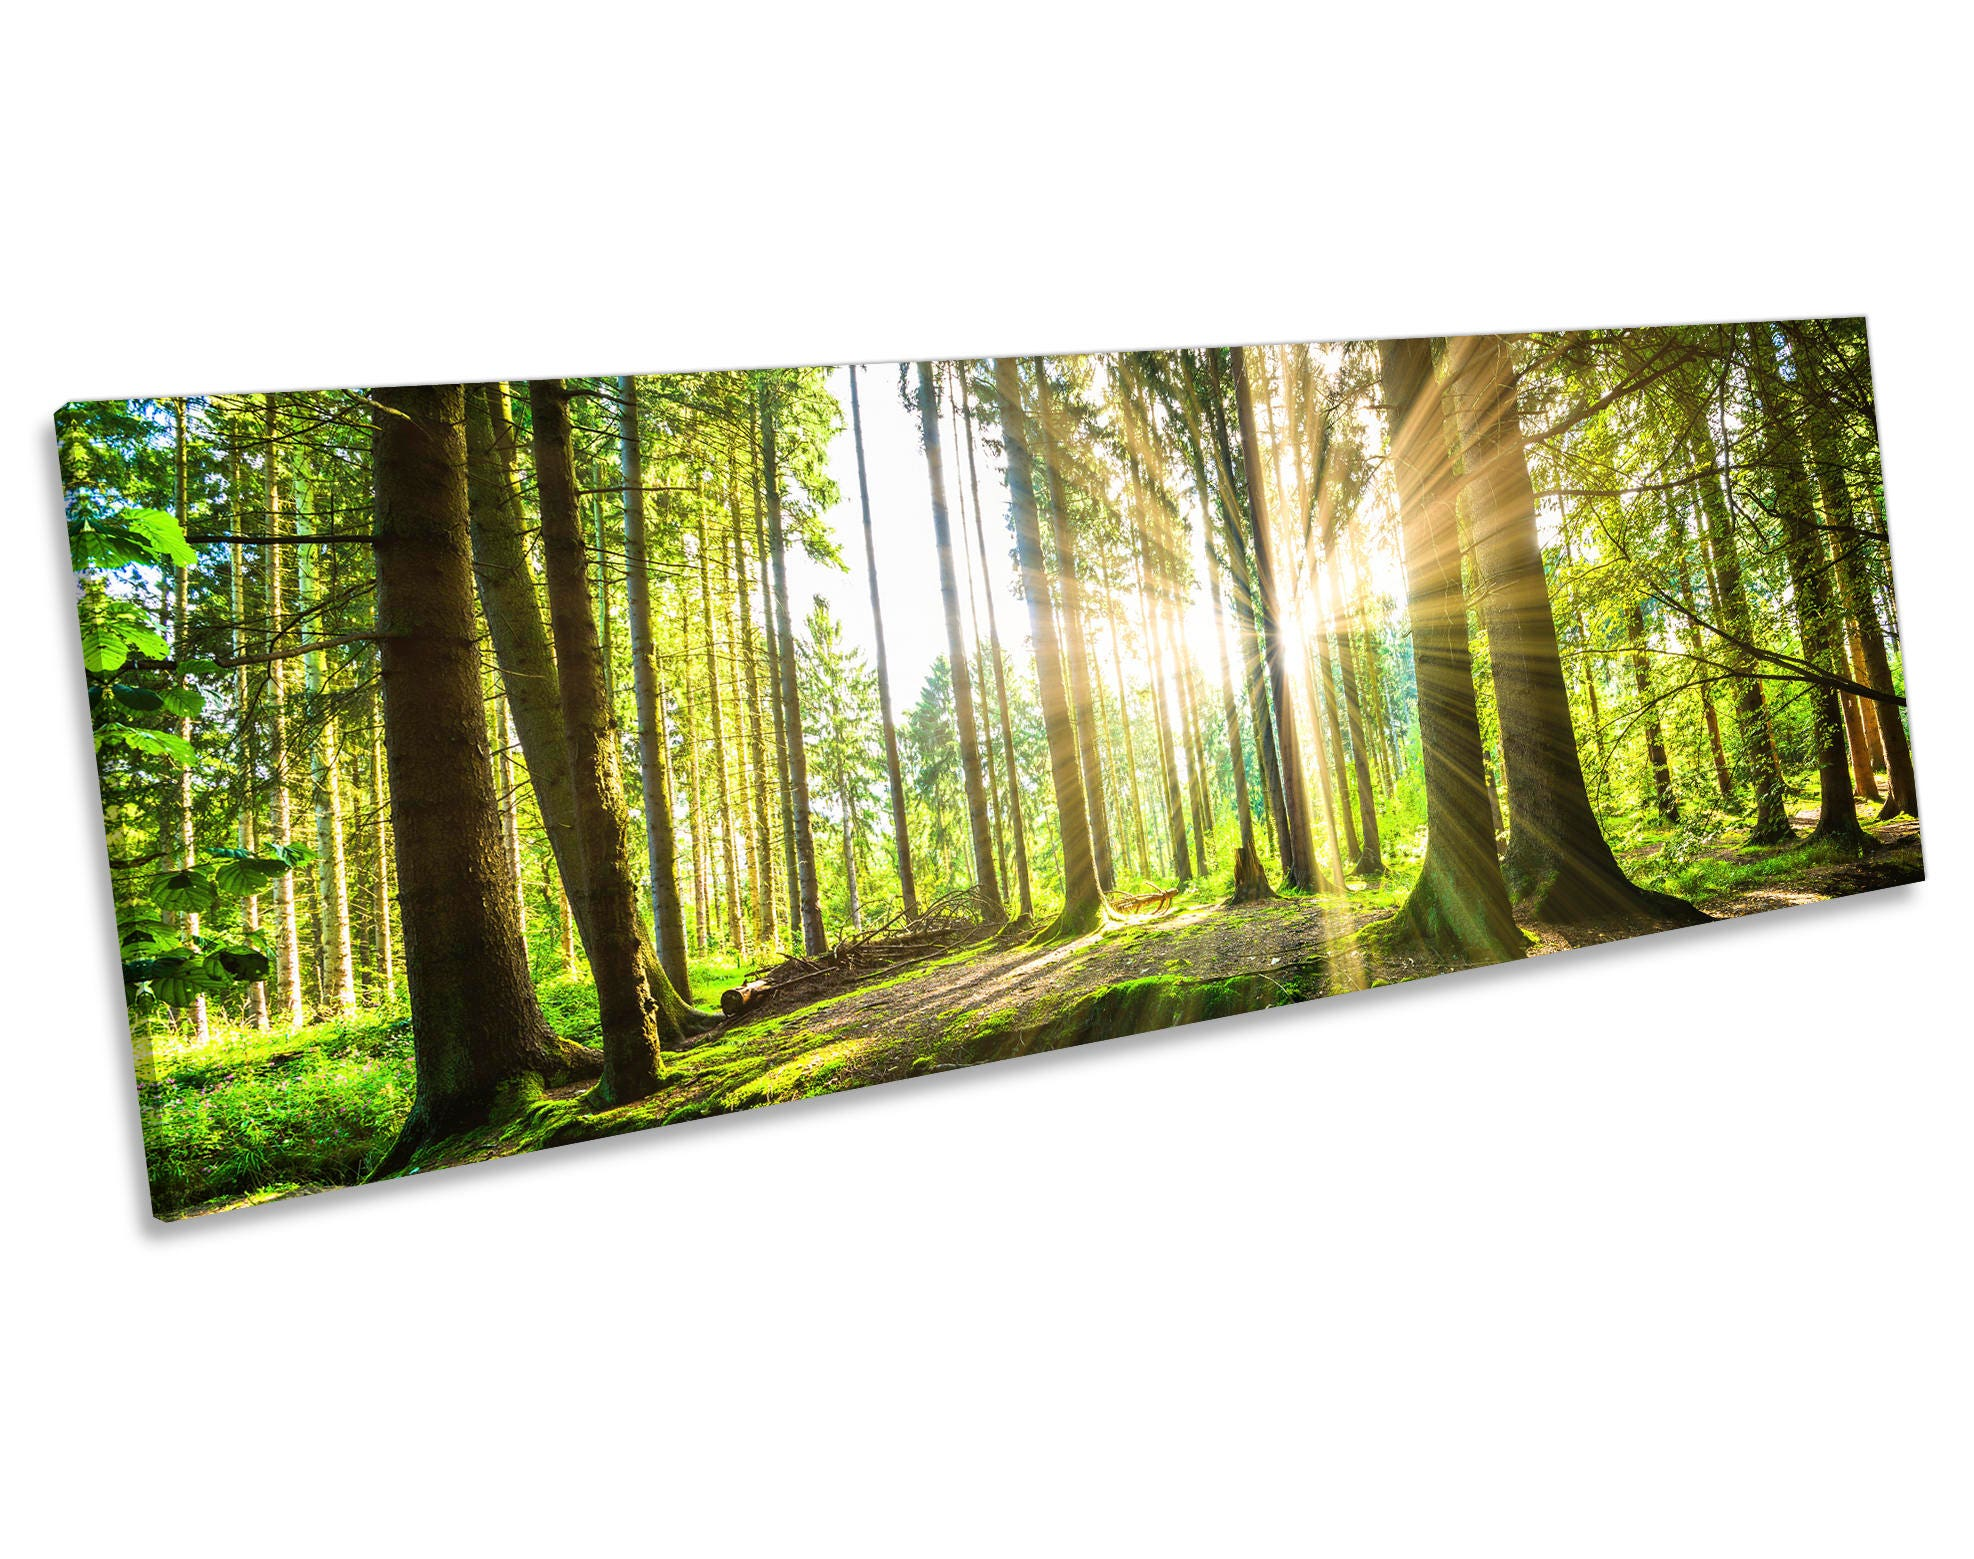 Green Countryside Forest Print CANVAS WALL ART Panoramic